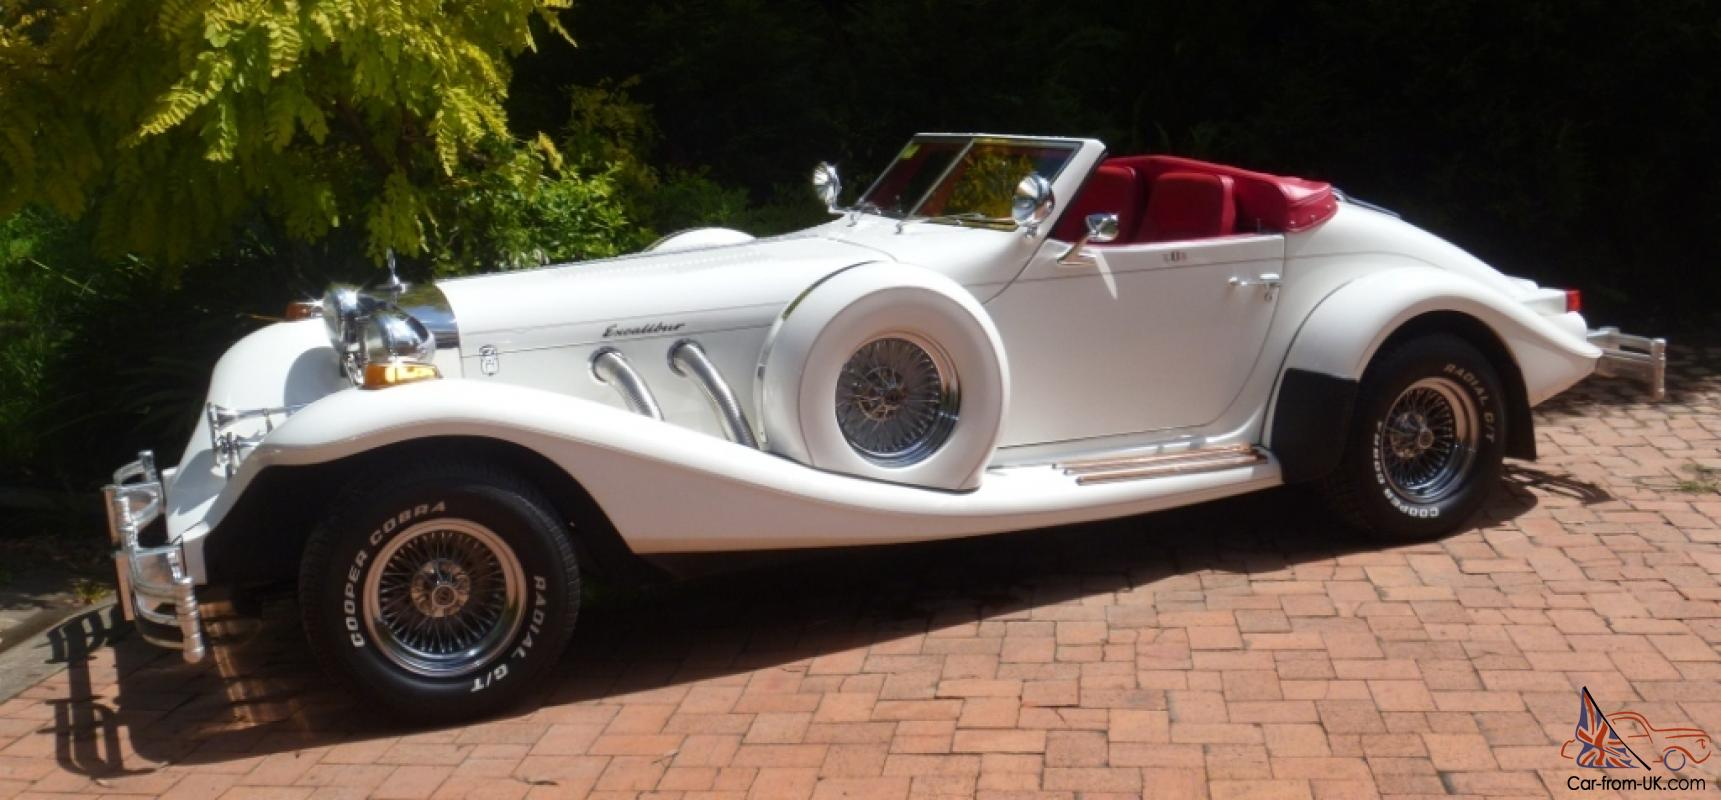 Classic Car Title For Sale